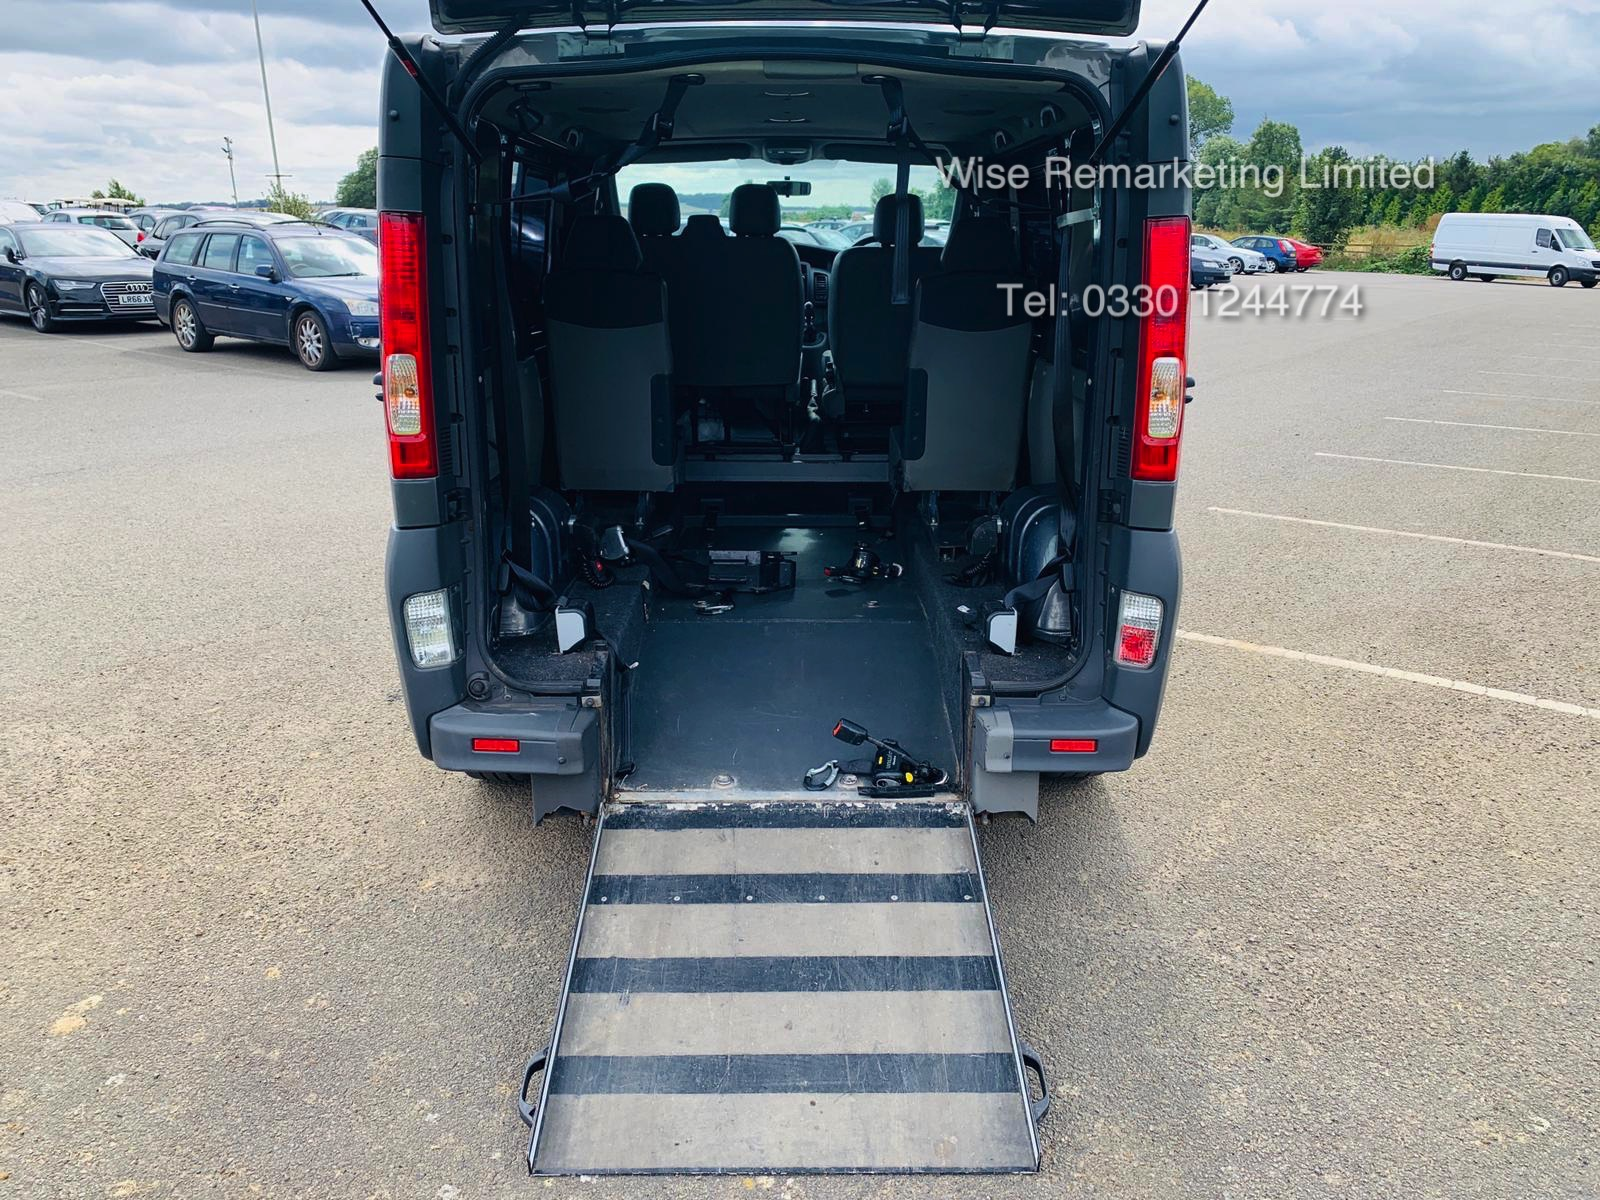 Vauxhall Vivaro 2.0 CDTI 2900 Minibus - 2014 Model - Wheel Chair Access -1 Owner From New -History - Image 8 of 21